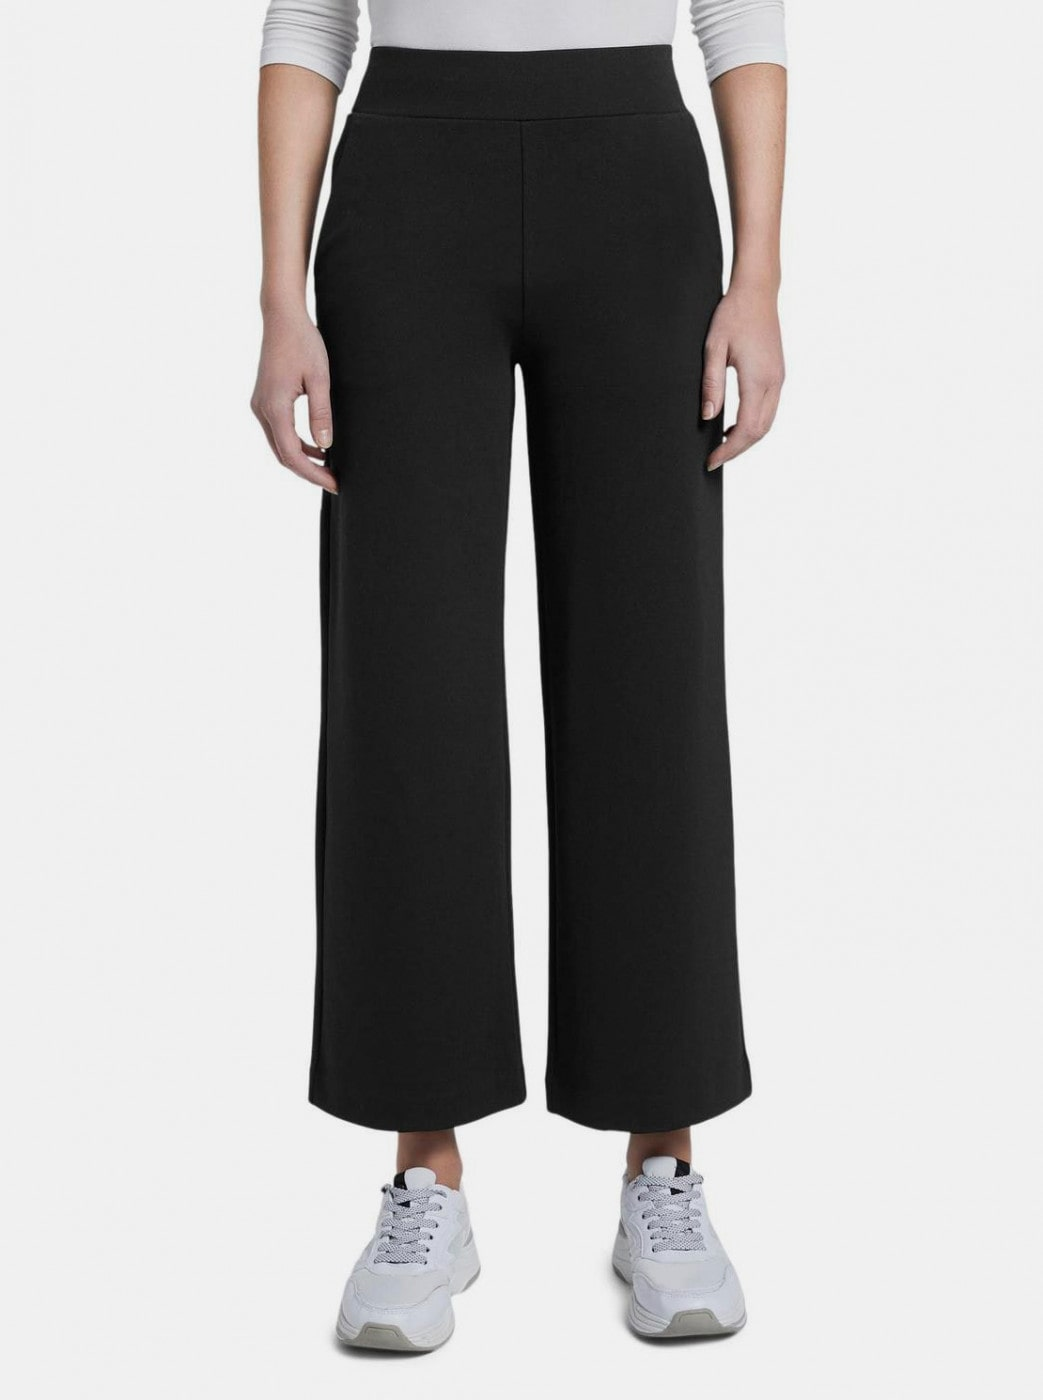 Black Women's Wide Pants Tom Tailor